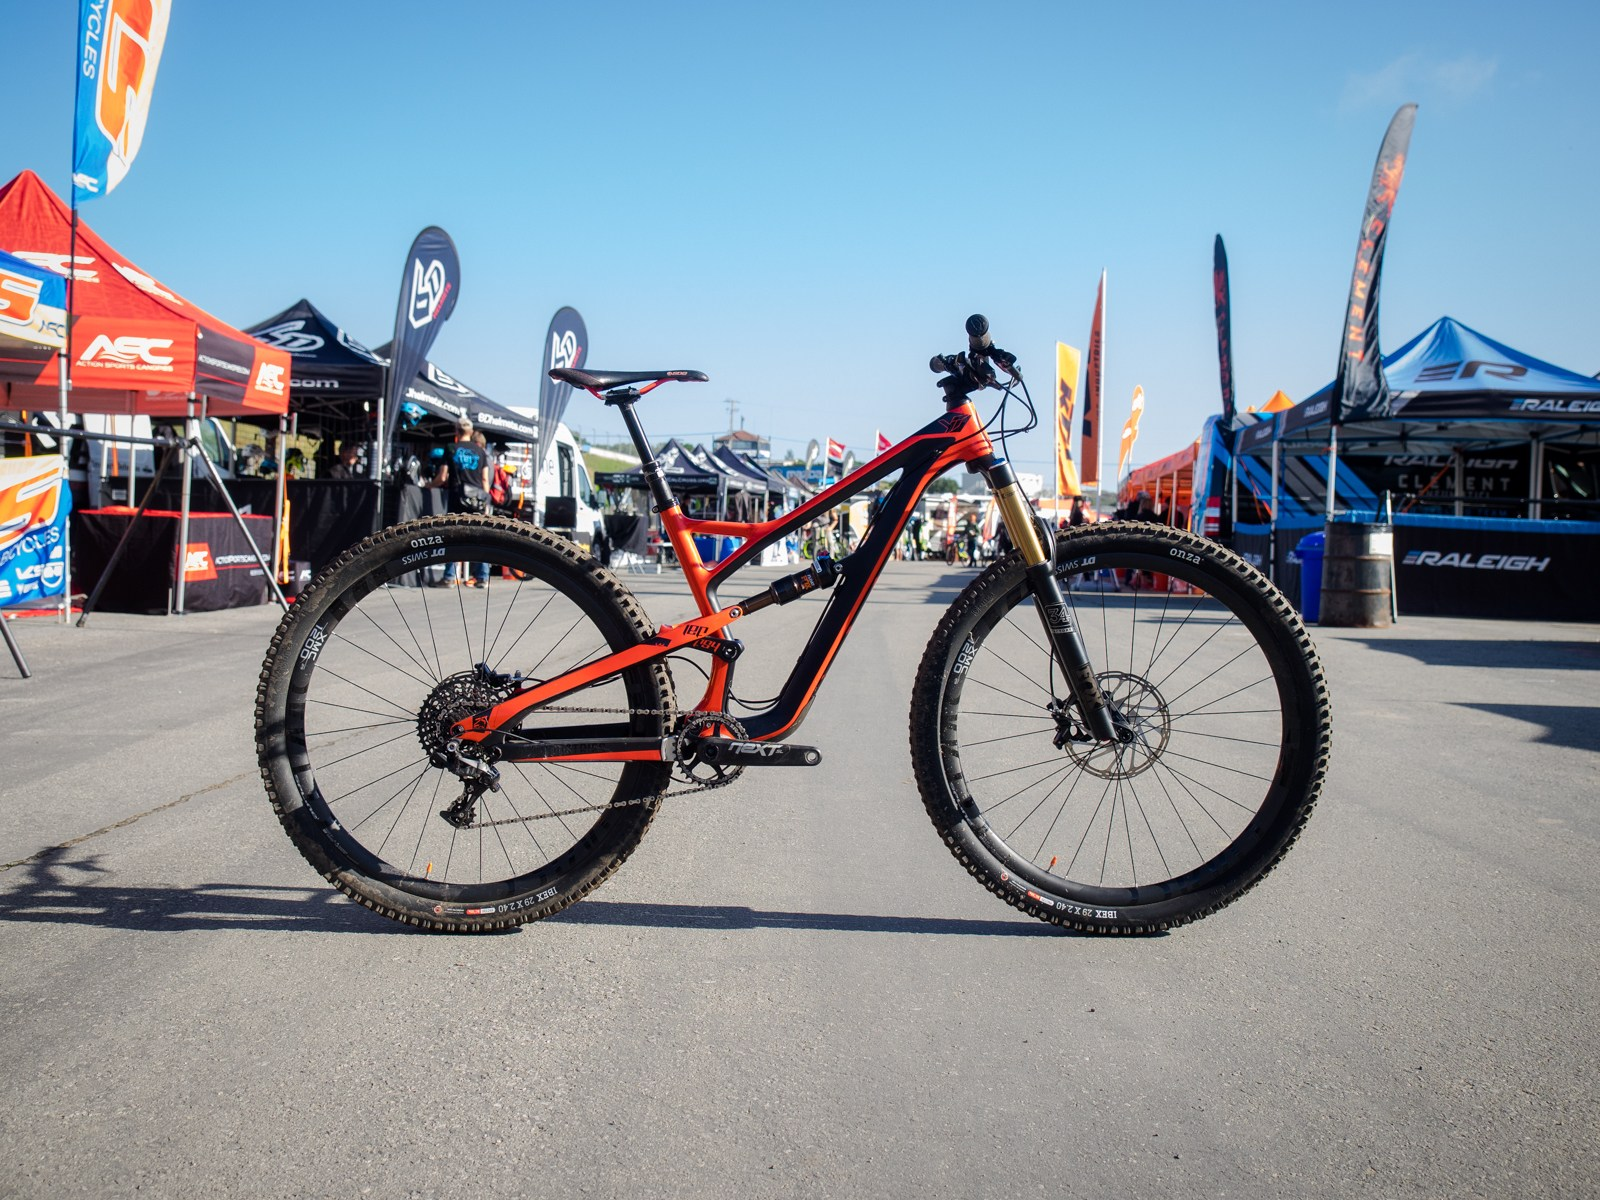 YT's new 29'r trail machine was much in demand the first day of Sea Otter. On Day 2, we got there just as the festival was waking up and were able to get some alone time with Jeffsy.